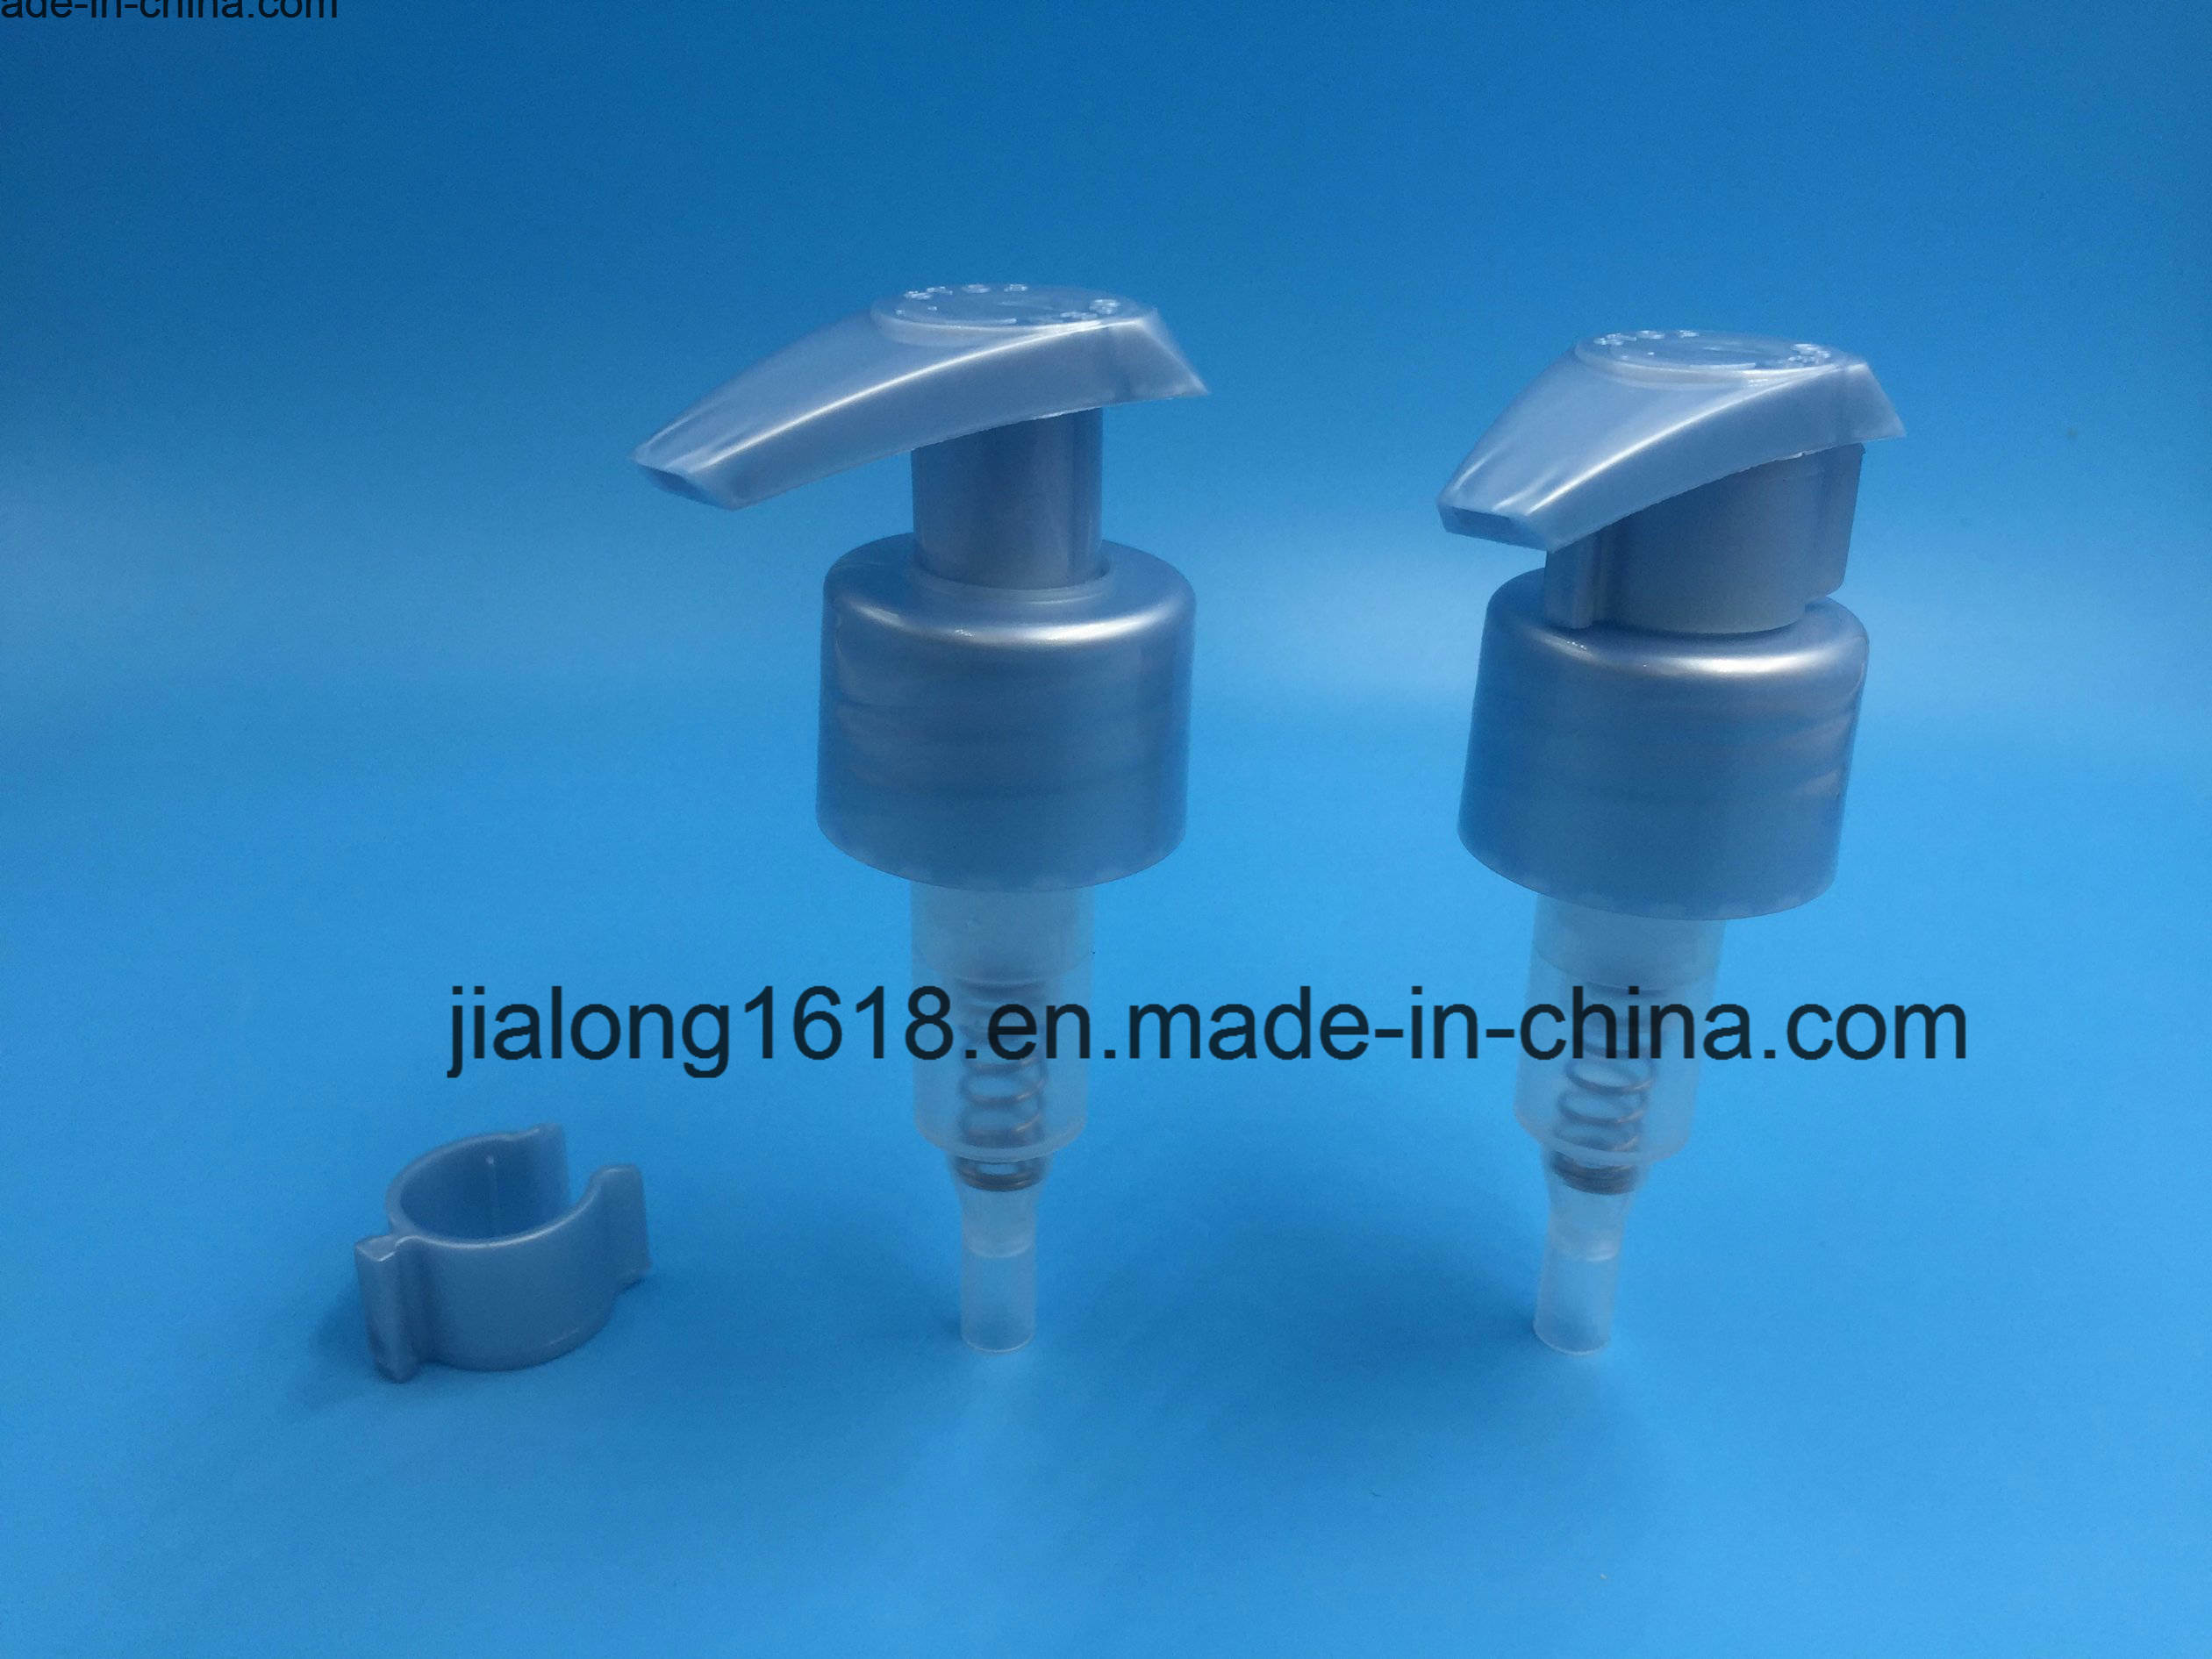 Plastic Lotion Pump with Clip for Cosmetic